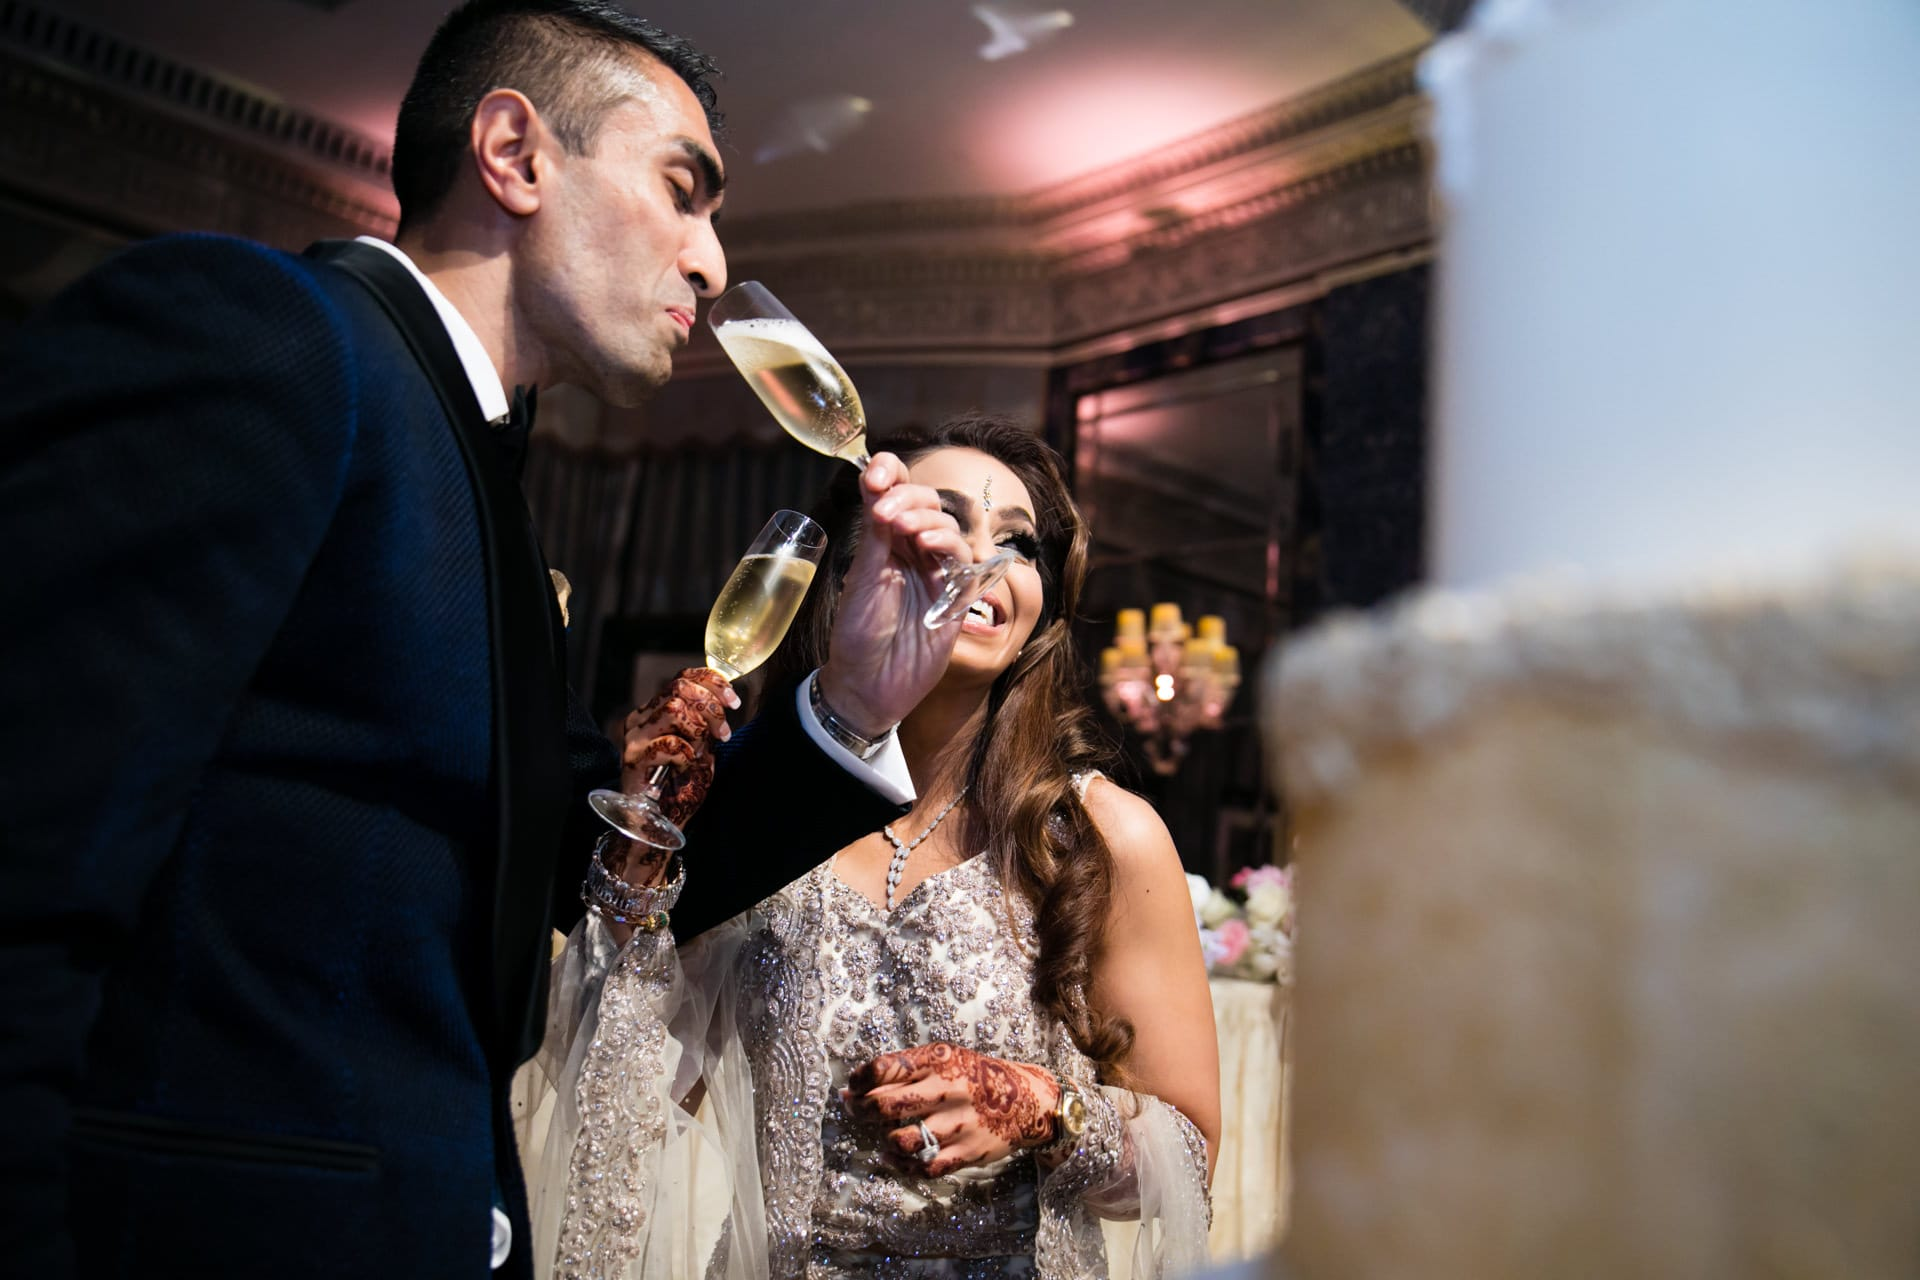 Groom sipping champagne